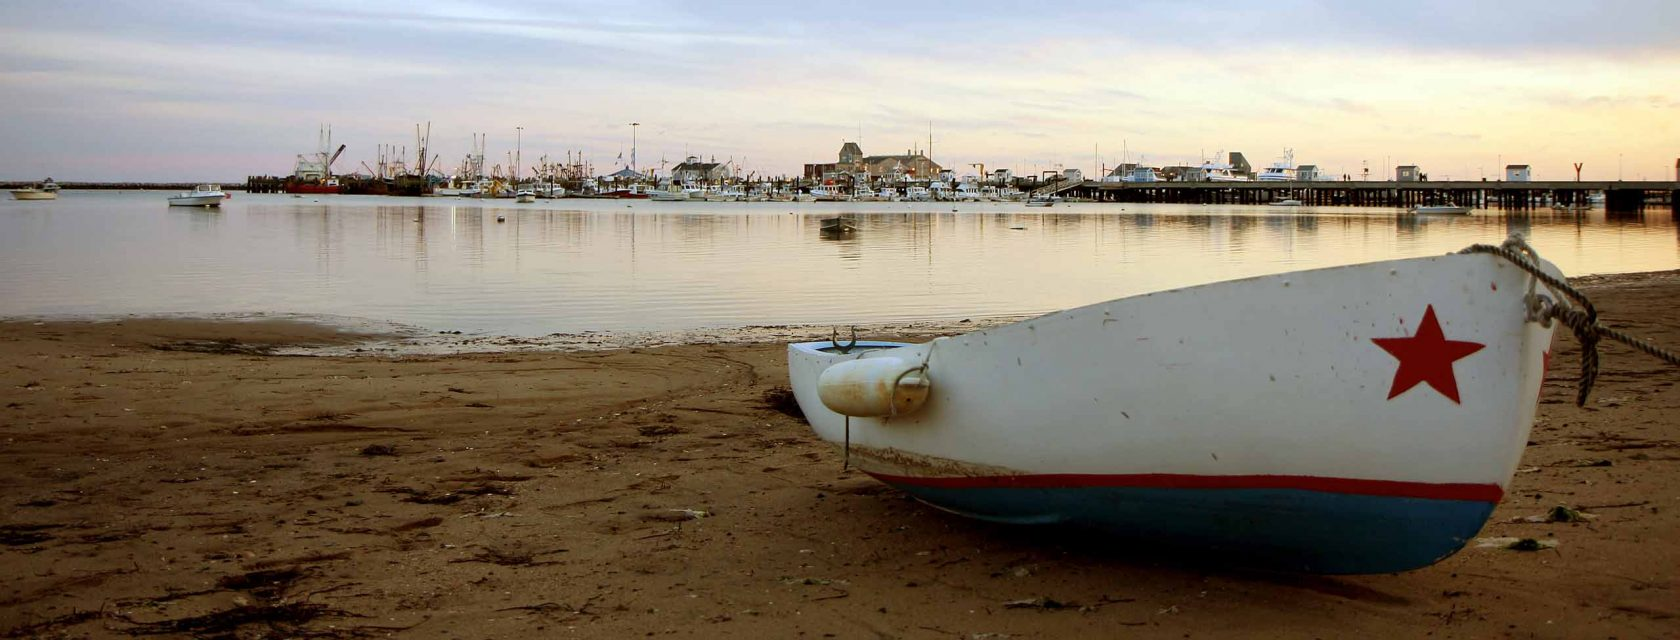 A boat with a star painted on rests on the beach in Provincetown